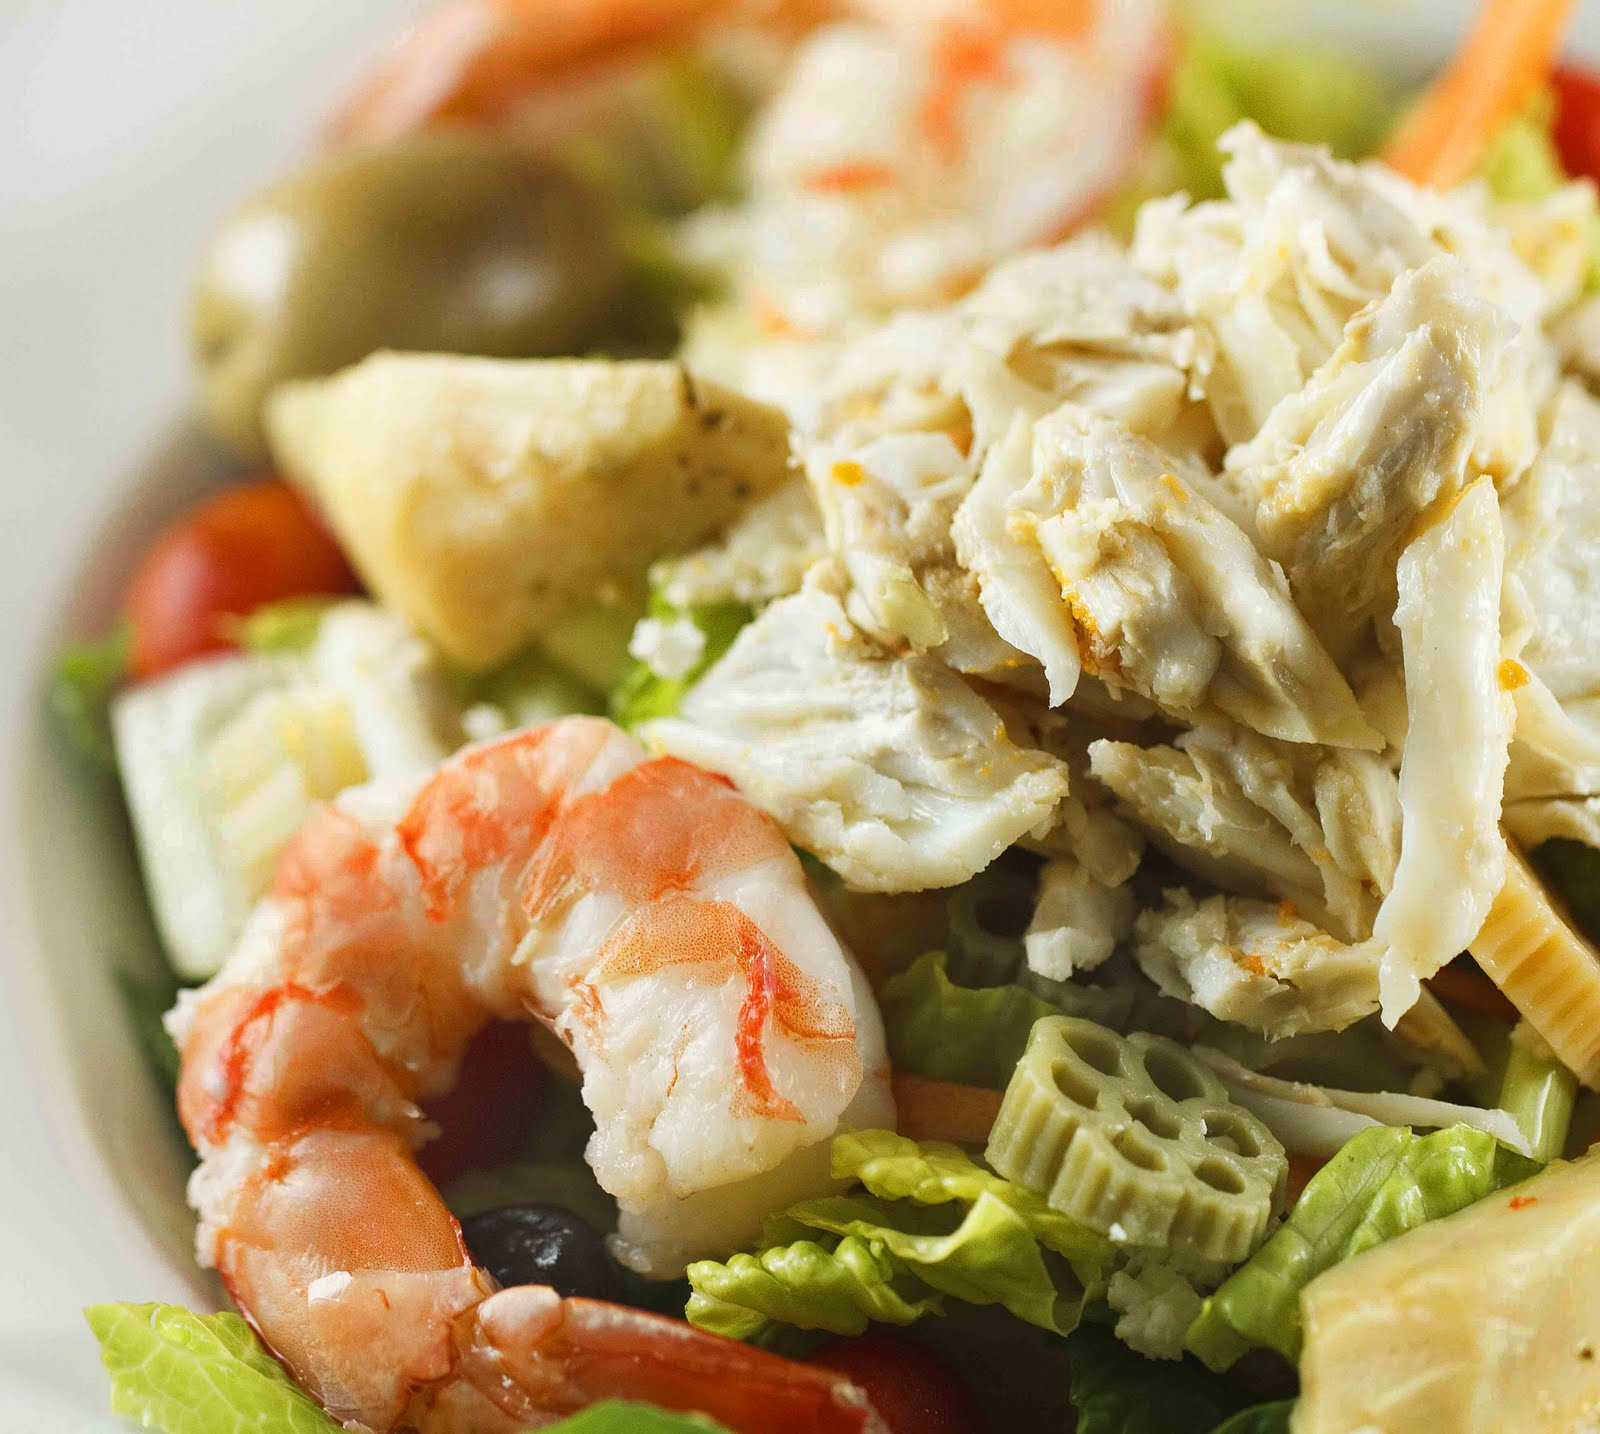 Prepare an original salad with crab sticks and croutons